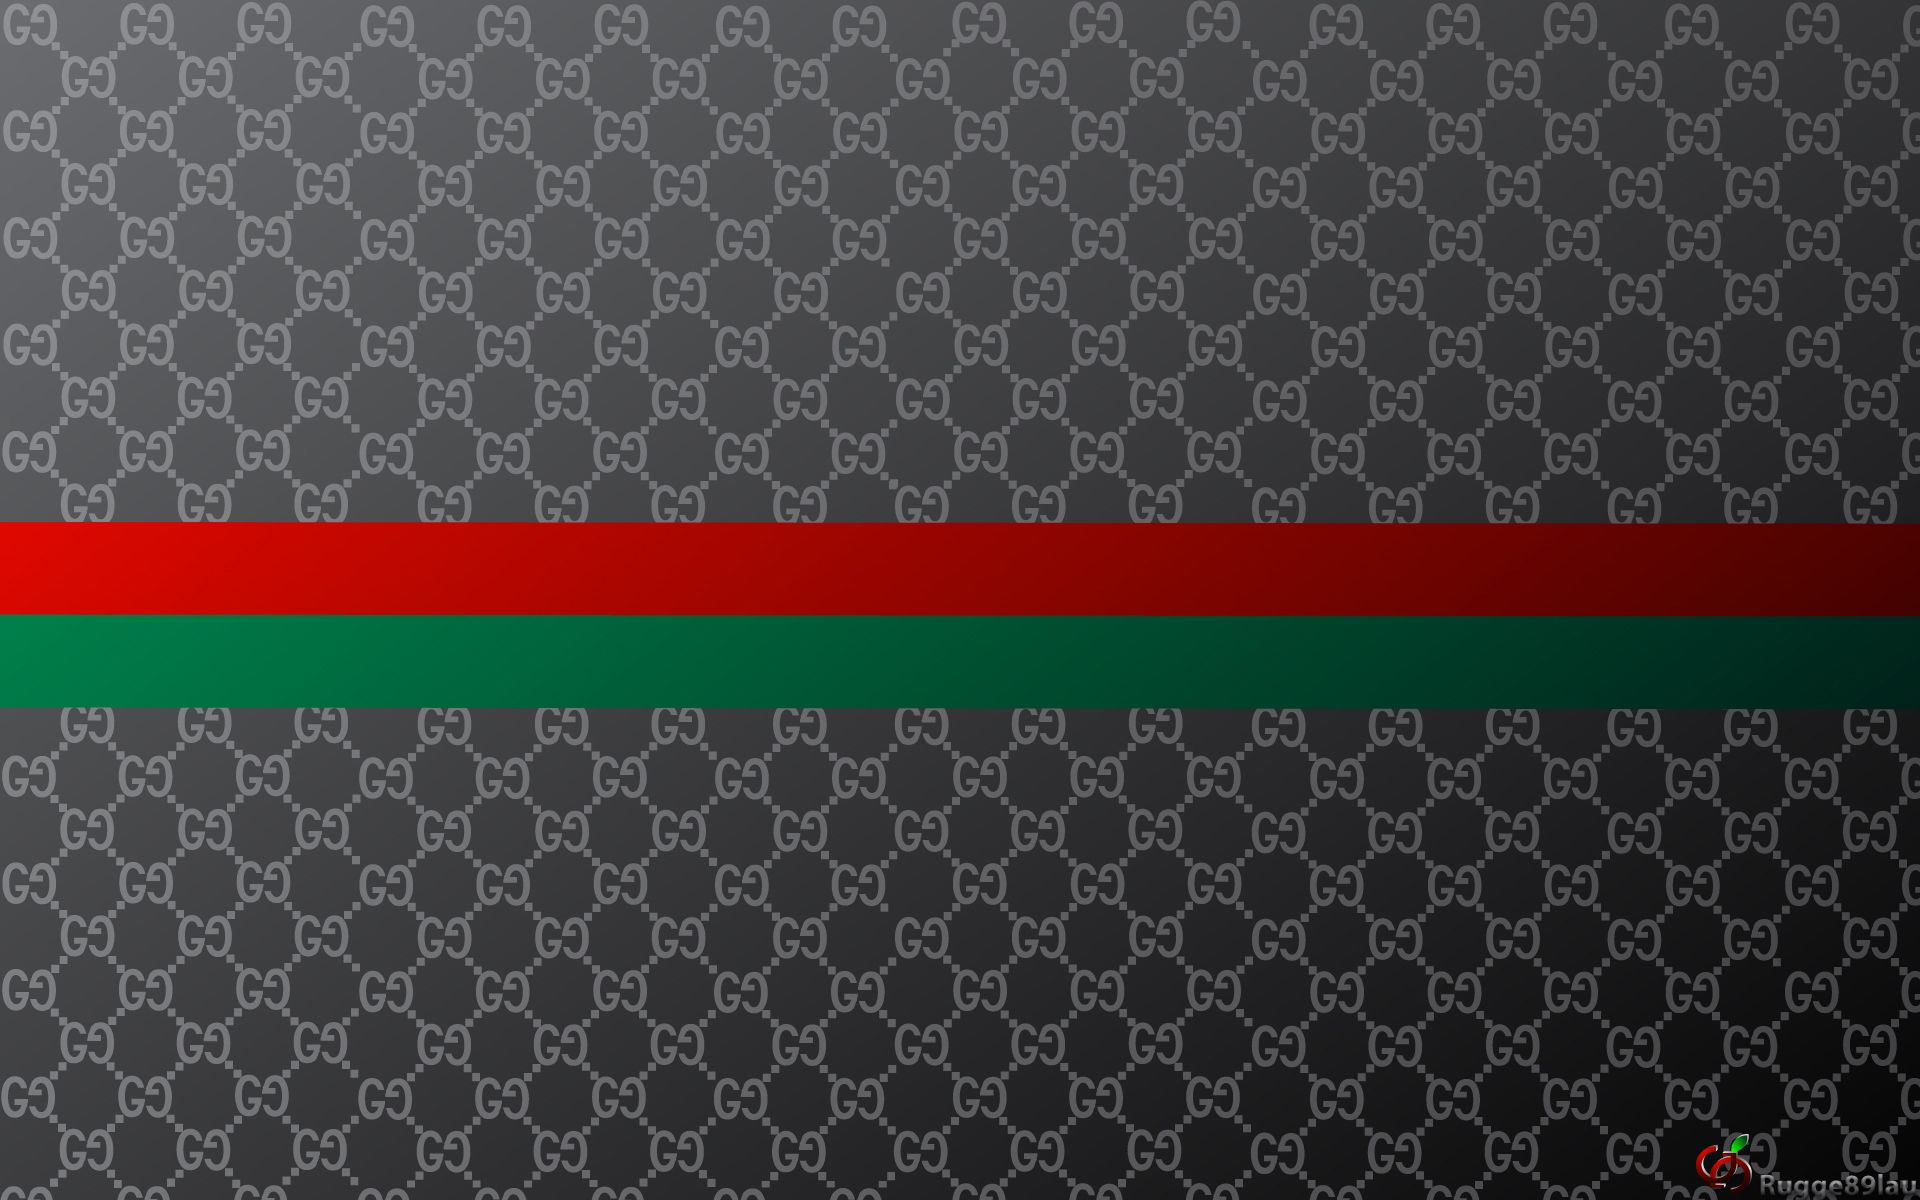 Gucci Wallpapers - Top Free Gucci Backgrounds ...